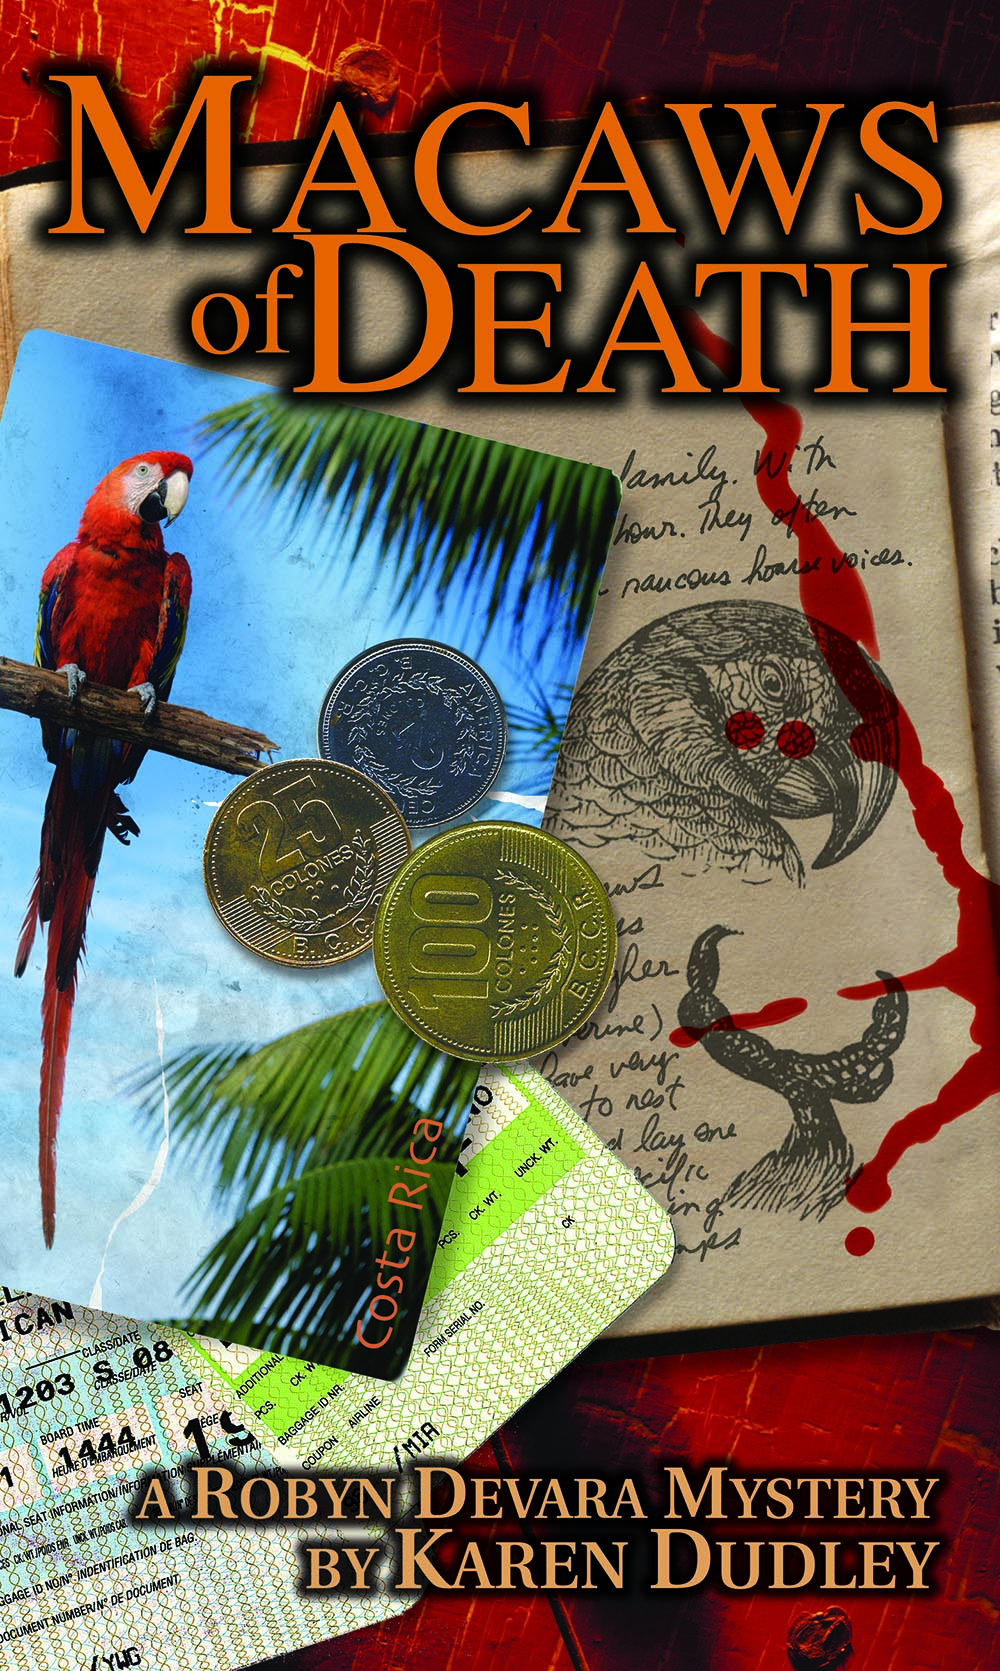 Macaws of Death by Karen Dudley